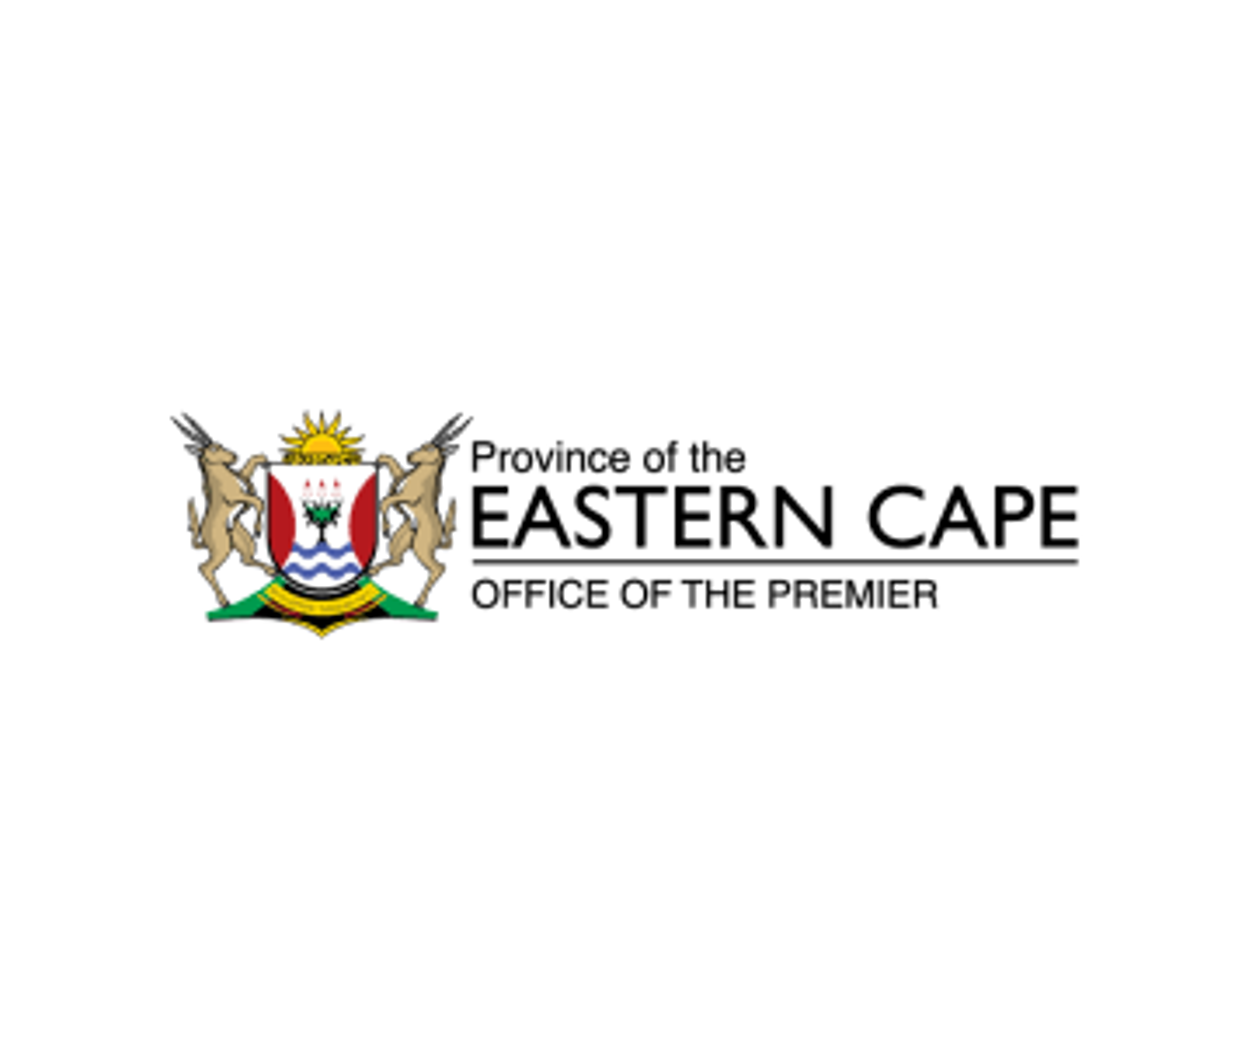 DLK Group has been conducting training in the Eastern Cape focusing on Business Process Management and Lean Management Training. The training has assisted the Eastern Cape Province in empowering our practitioners in Organisational Design and Lean Management. We value their contribution in assisting the Province to build capacity.